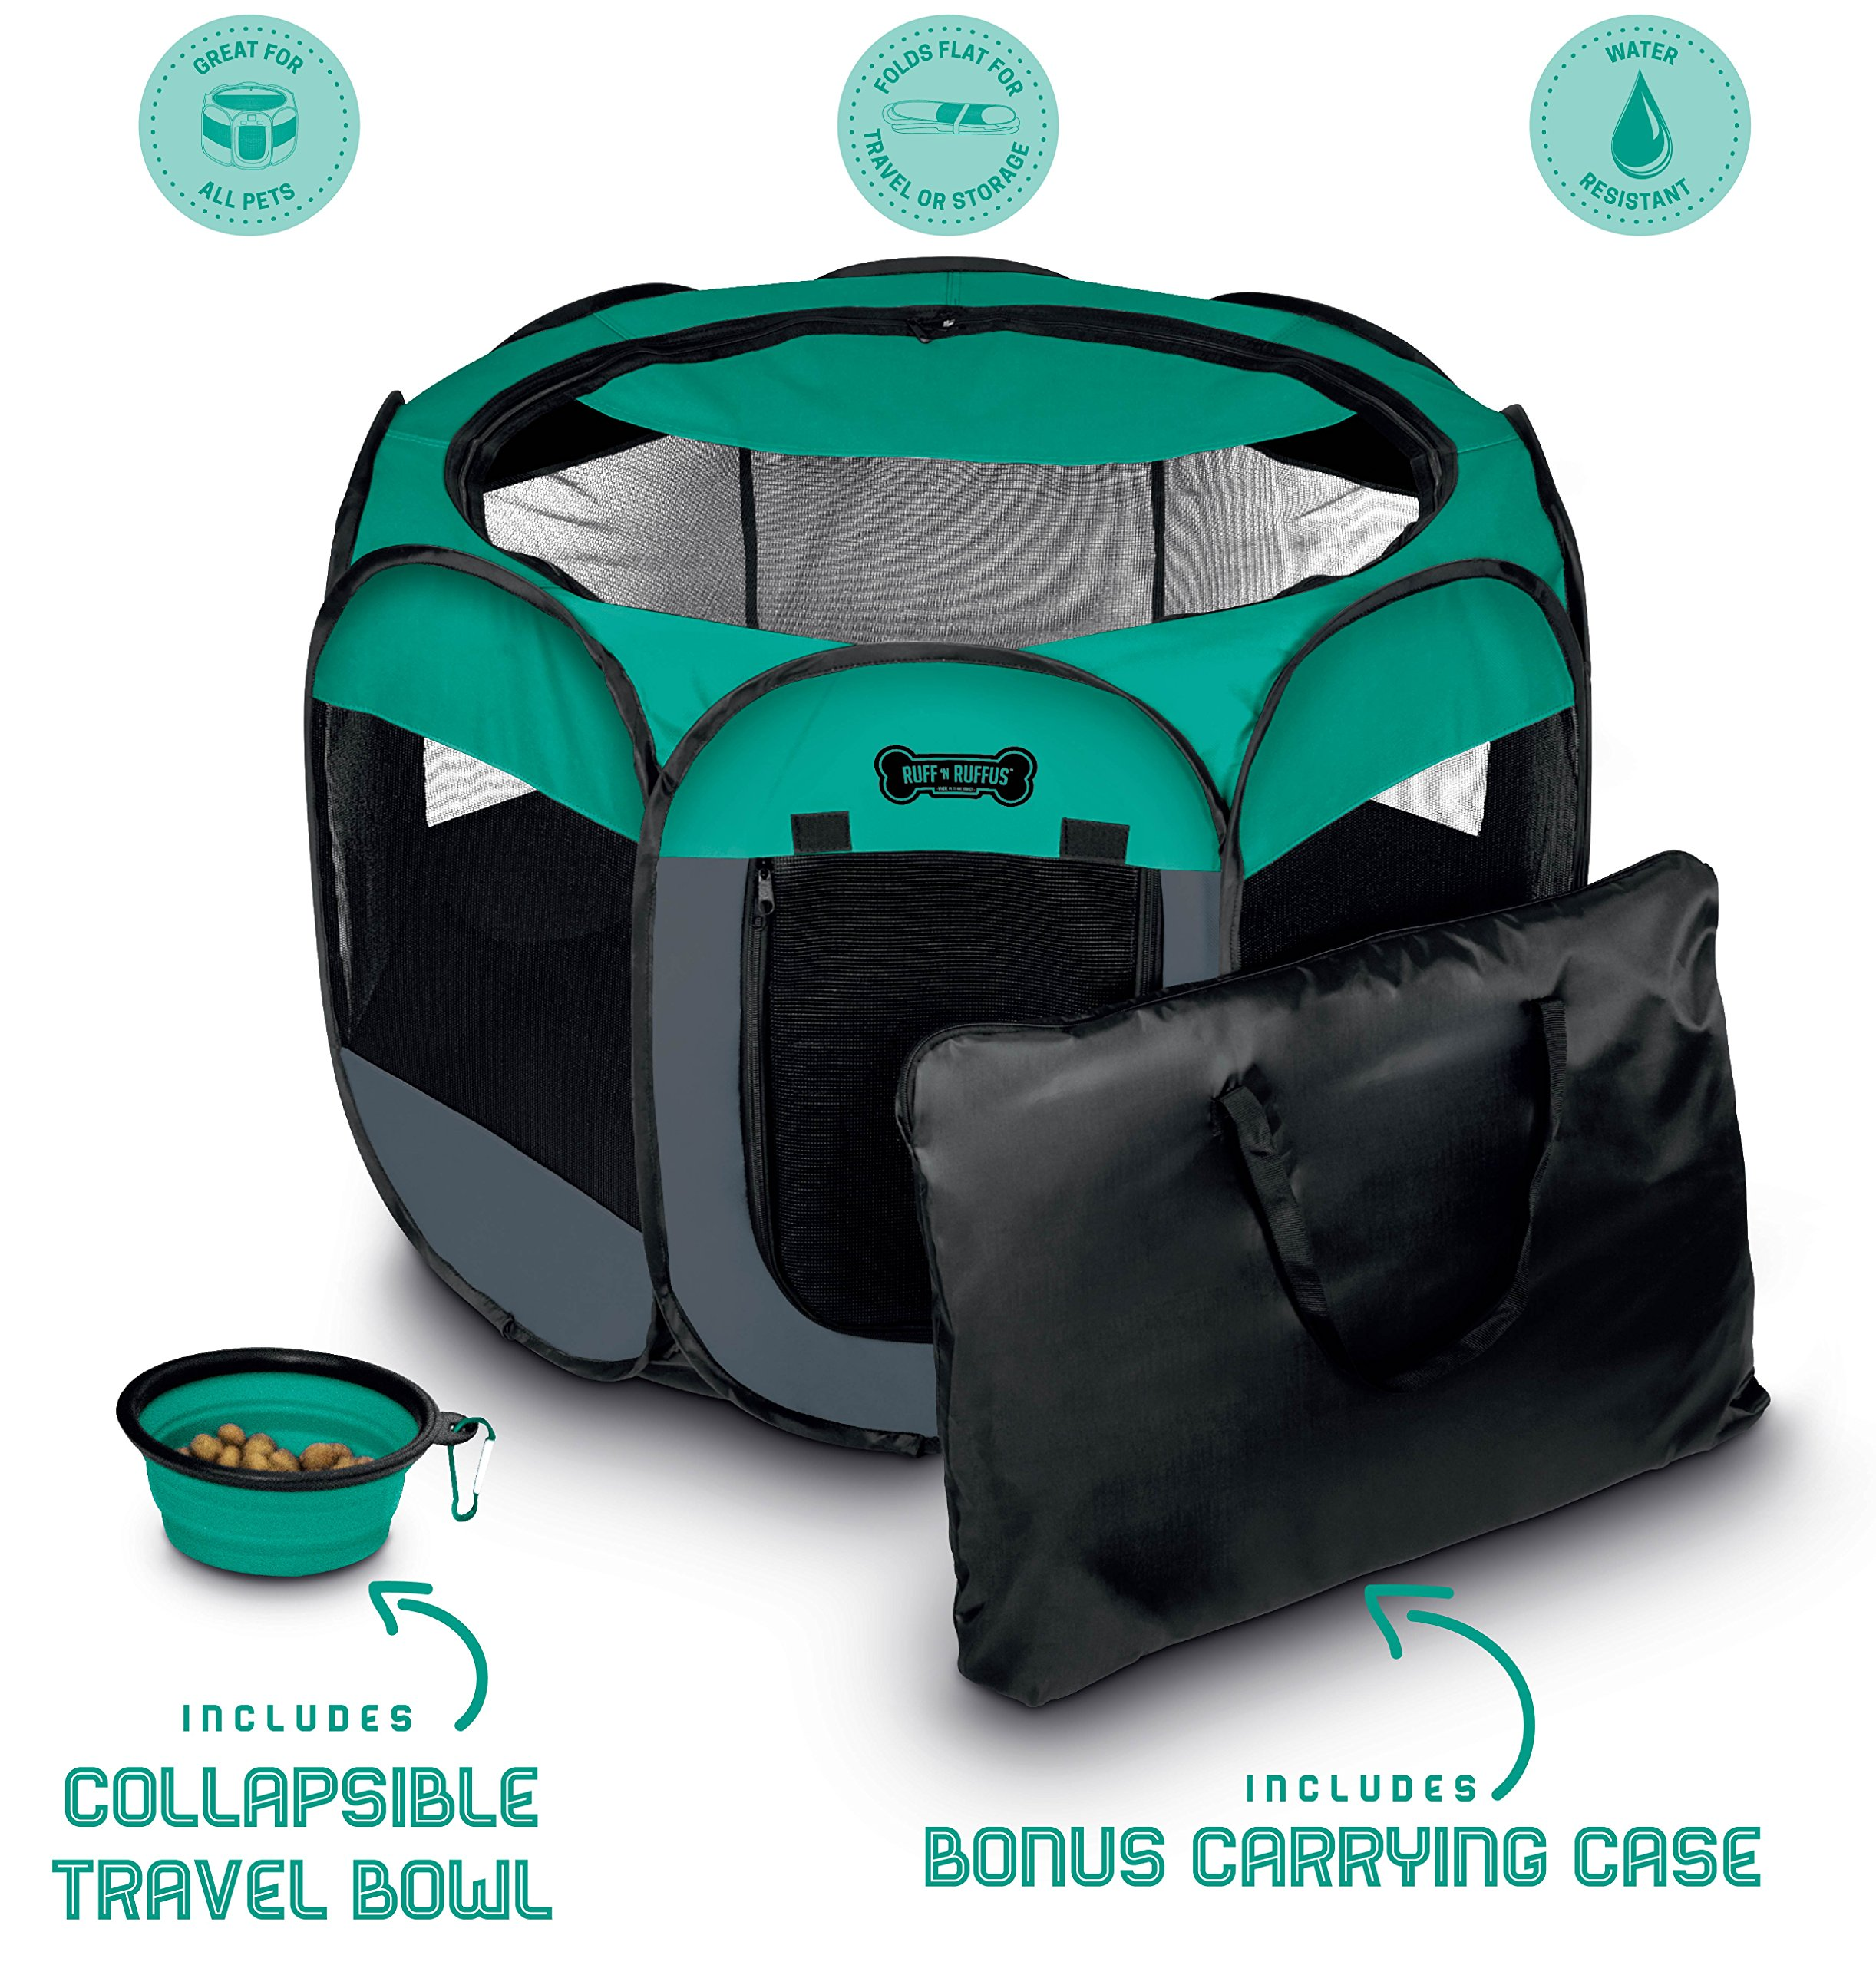 Ruff 'n Ruffus Portable Foldable Pet Playpen + Carrying Case & Collapsible Travel Bowl | Indoor / Outdoor use | Water resistant | Removable shade cover | Dogs / Cats / Rabbit | Available In 2 Sizes